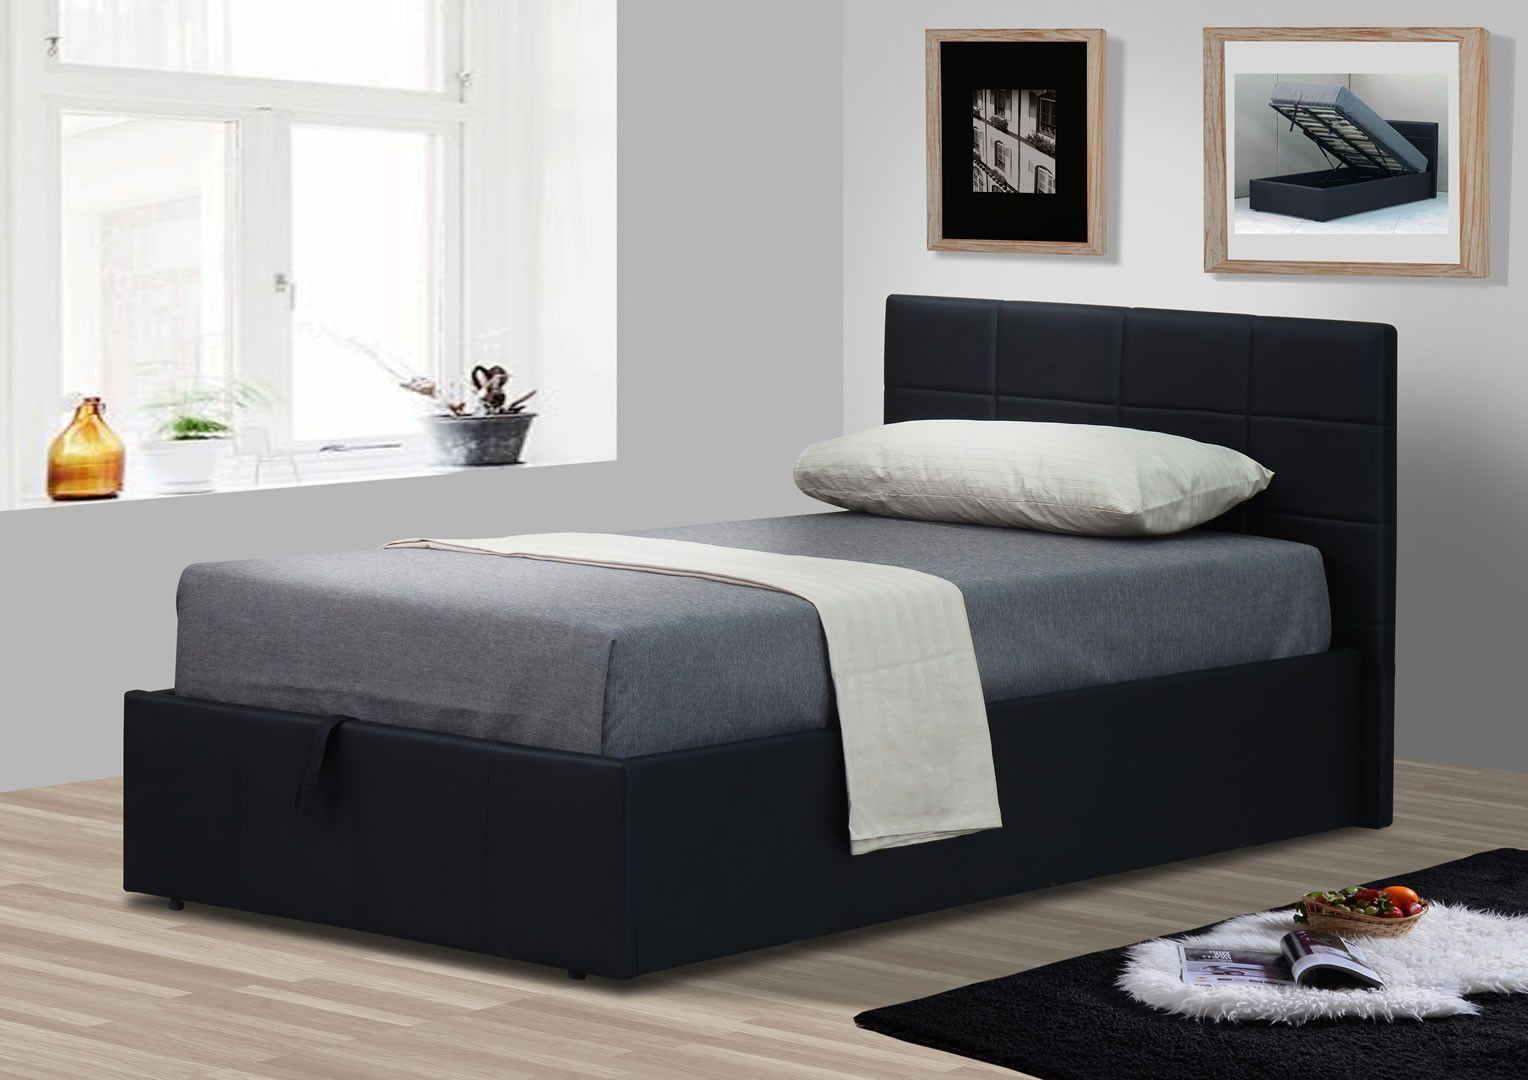 lits doubles lit double 140 cm avec sommier et coffre de rangement coco noir mat trocity. Black Bedroom Furniture Sets. Home Design Ideas